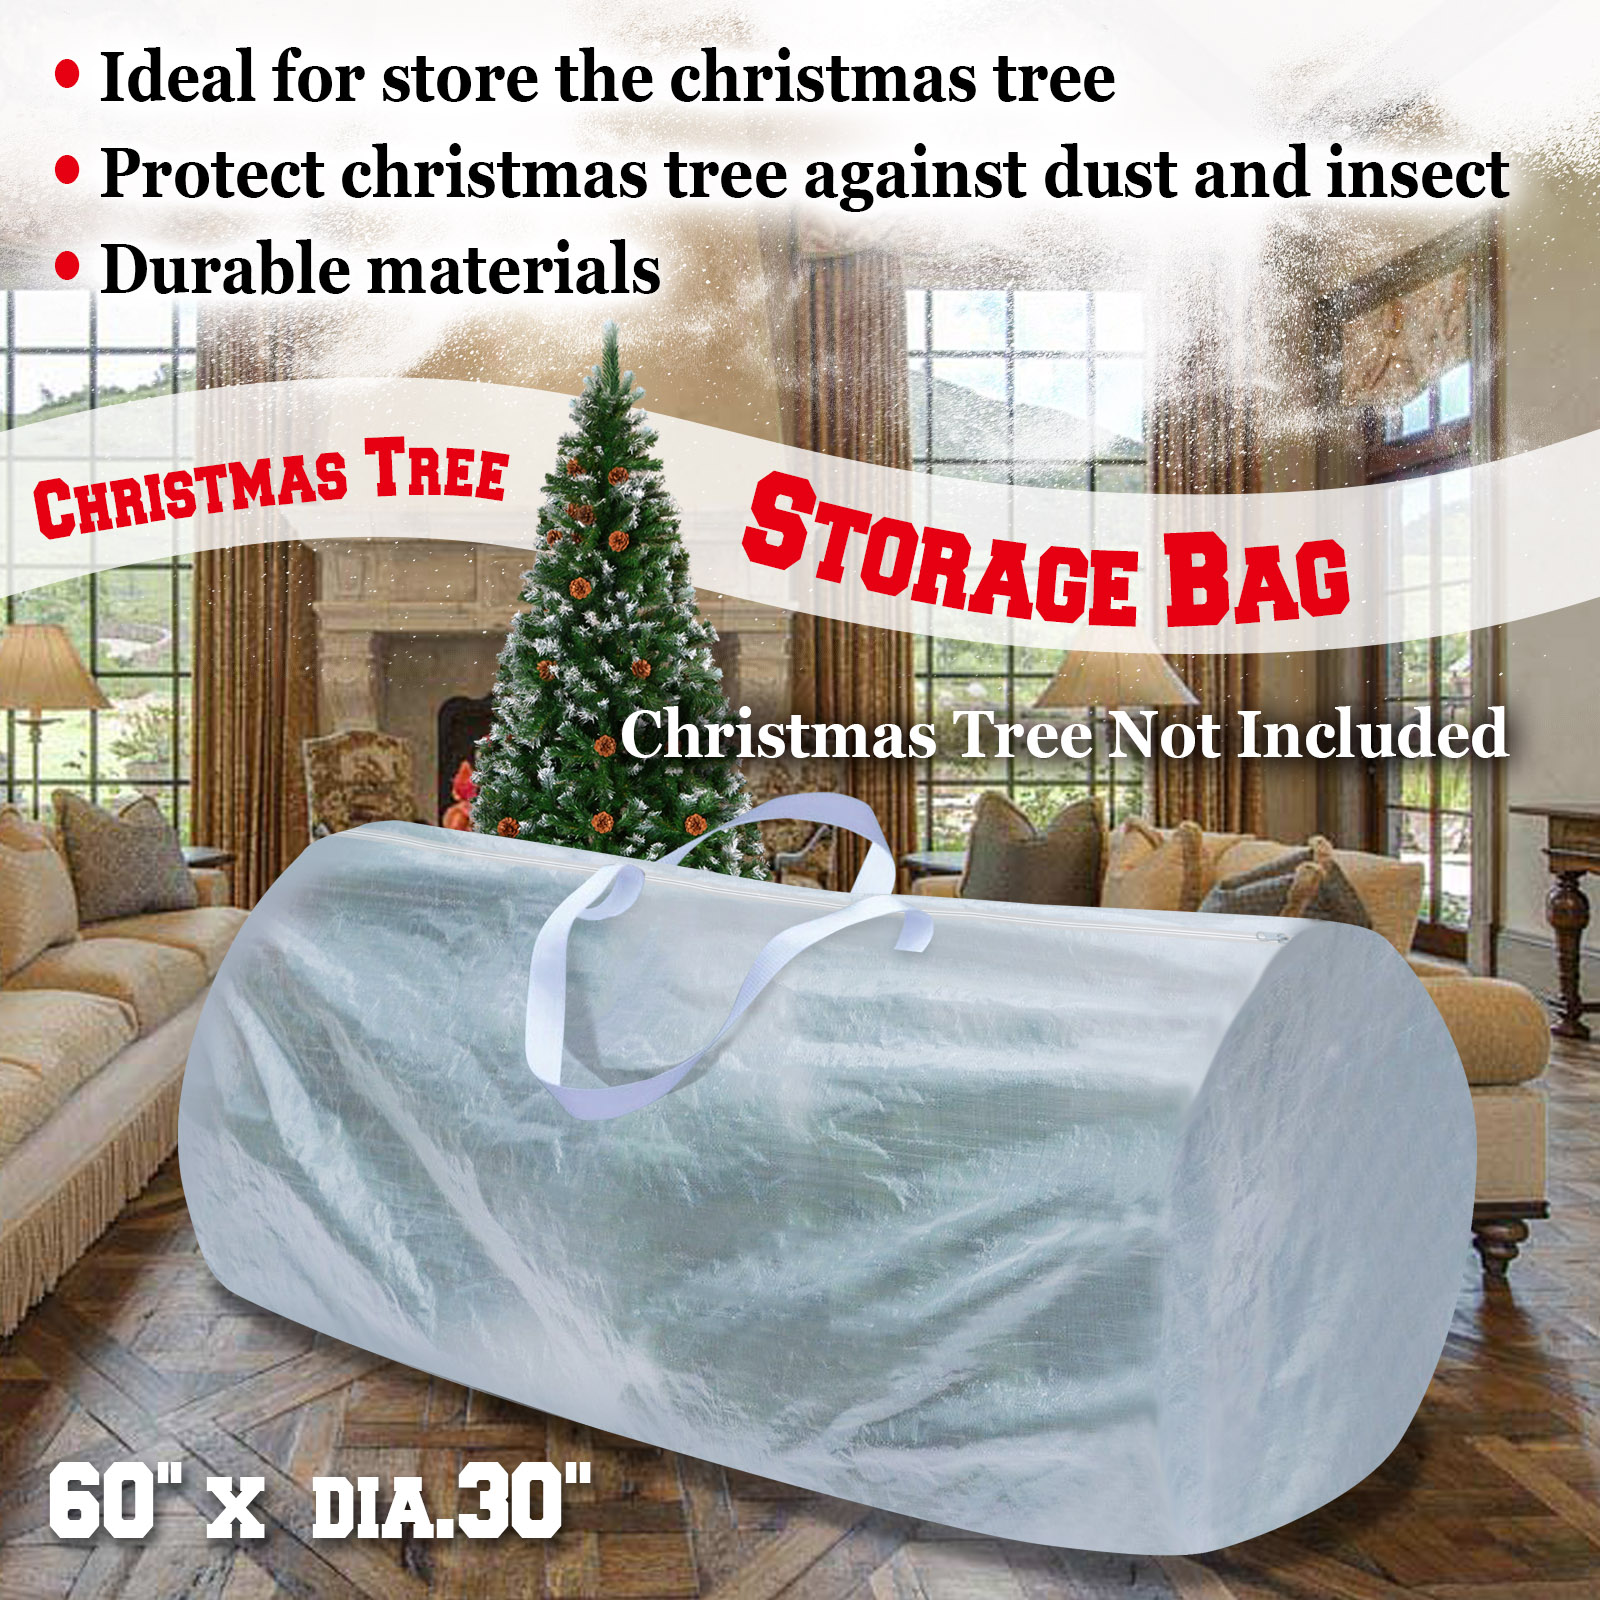 Strong Camel Heavy Duty Large Artificial Christmas Tree Storage Bag WHITE  COLOR For Clean Up Holiday